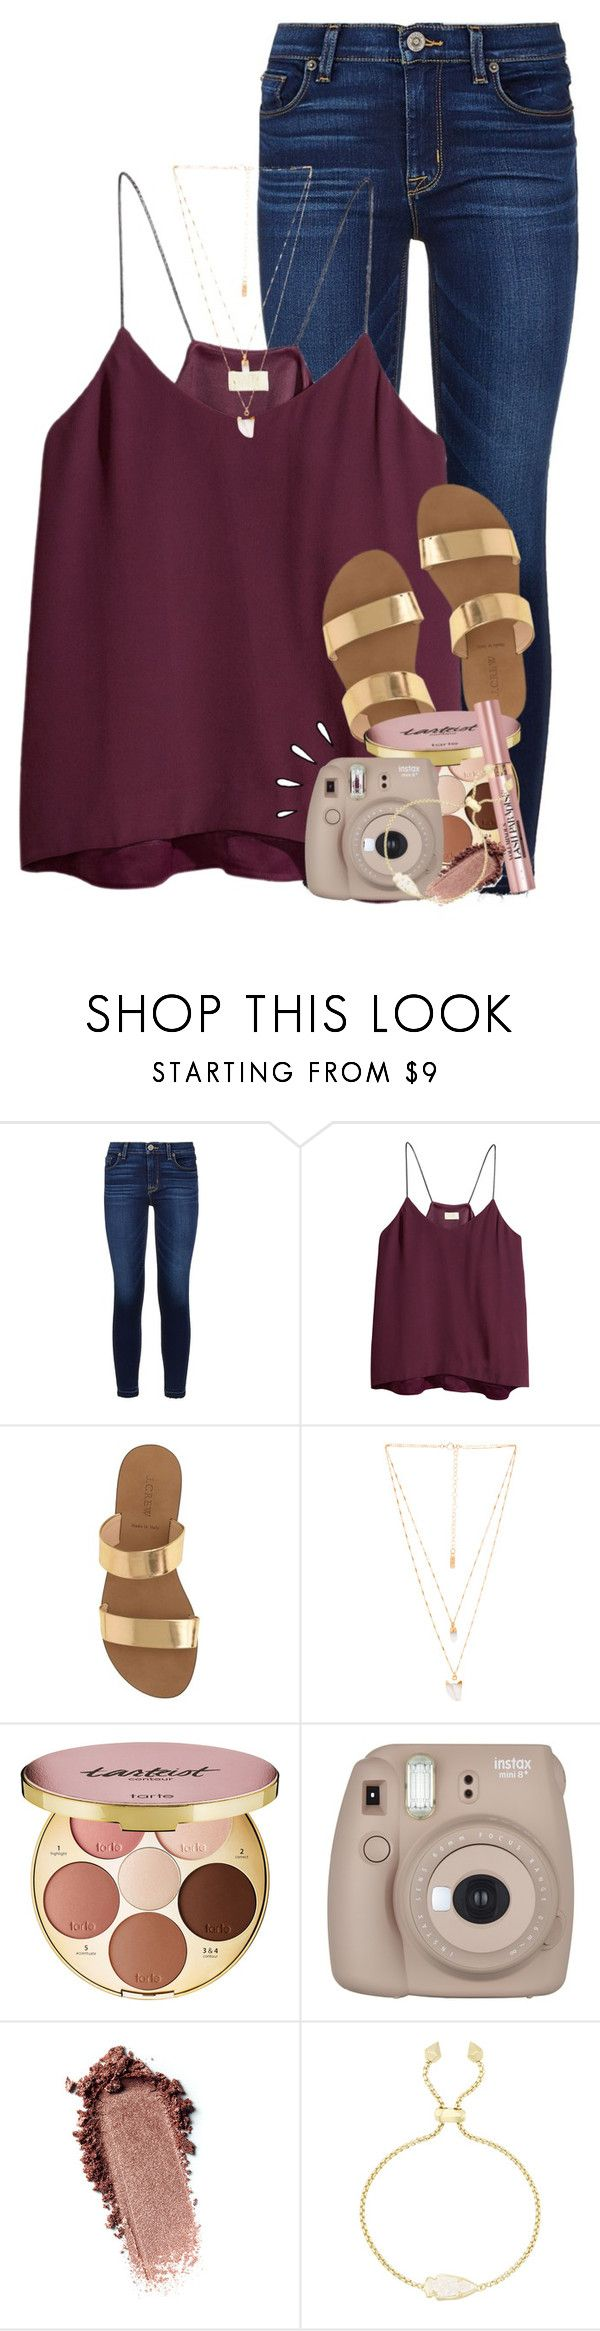 """""""we are beautiful like diamonds in the sky"""" by emilyandella ❤ liked on Polyvore featuring Hudson, H&M, J.Crew, Natalie B, tarte, L'Oréal Paris, Fujifilm, Kendra Scott and Old Navy"""